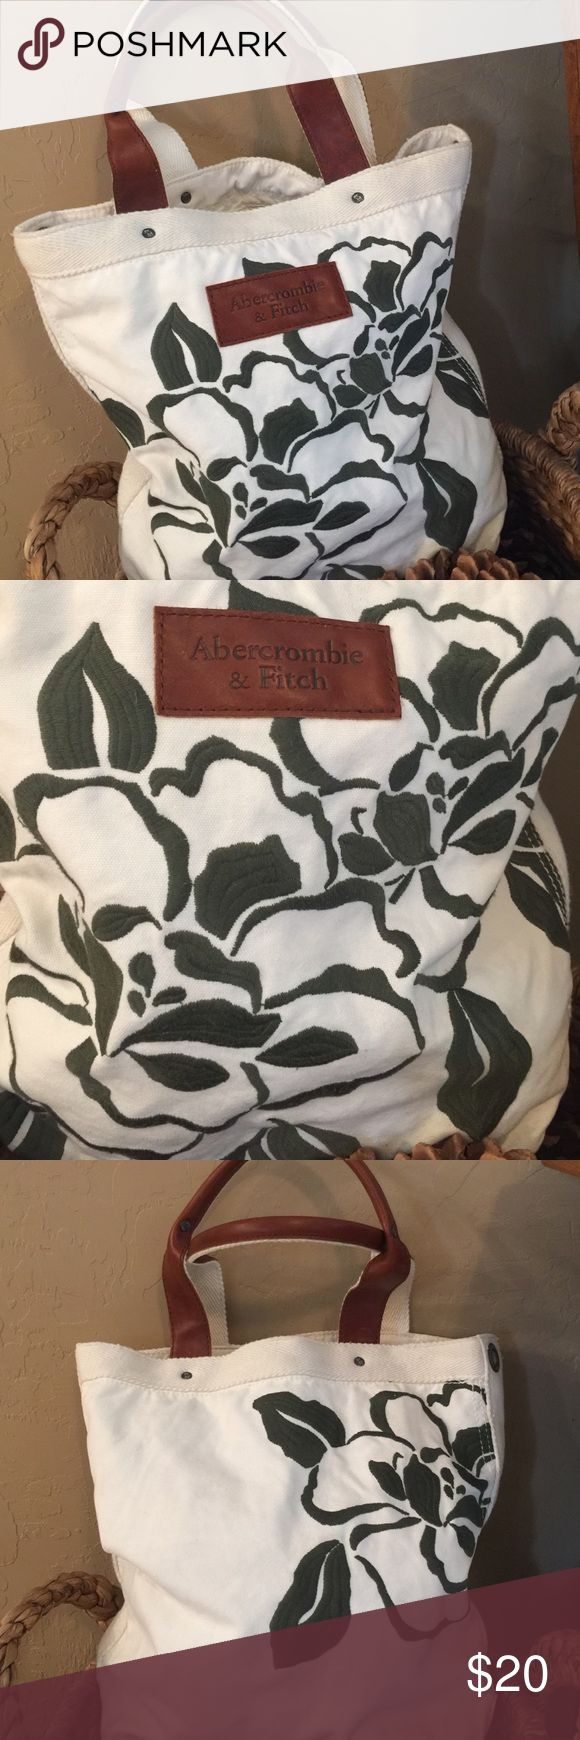 🌿Abercrombie & Fitch Tote Bag🌿 🌿Abercrombie & Fitch....Bag ..Off/White with Beautiful green embroidered flowers..on front and back...Leather/Canvas handles..Inside Zipper pocket, 1- slot pocket, with a fastener...Very nice material weight 🌿 Abercrombie & Fitch Bags Totes